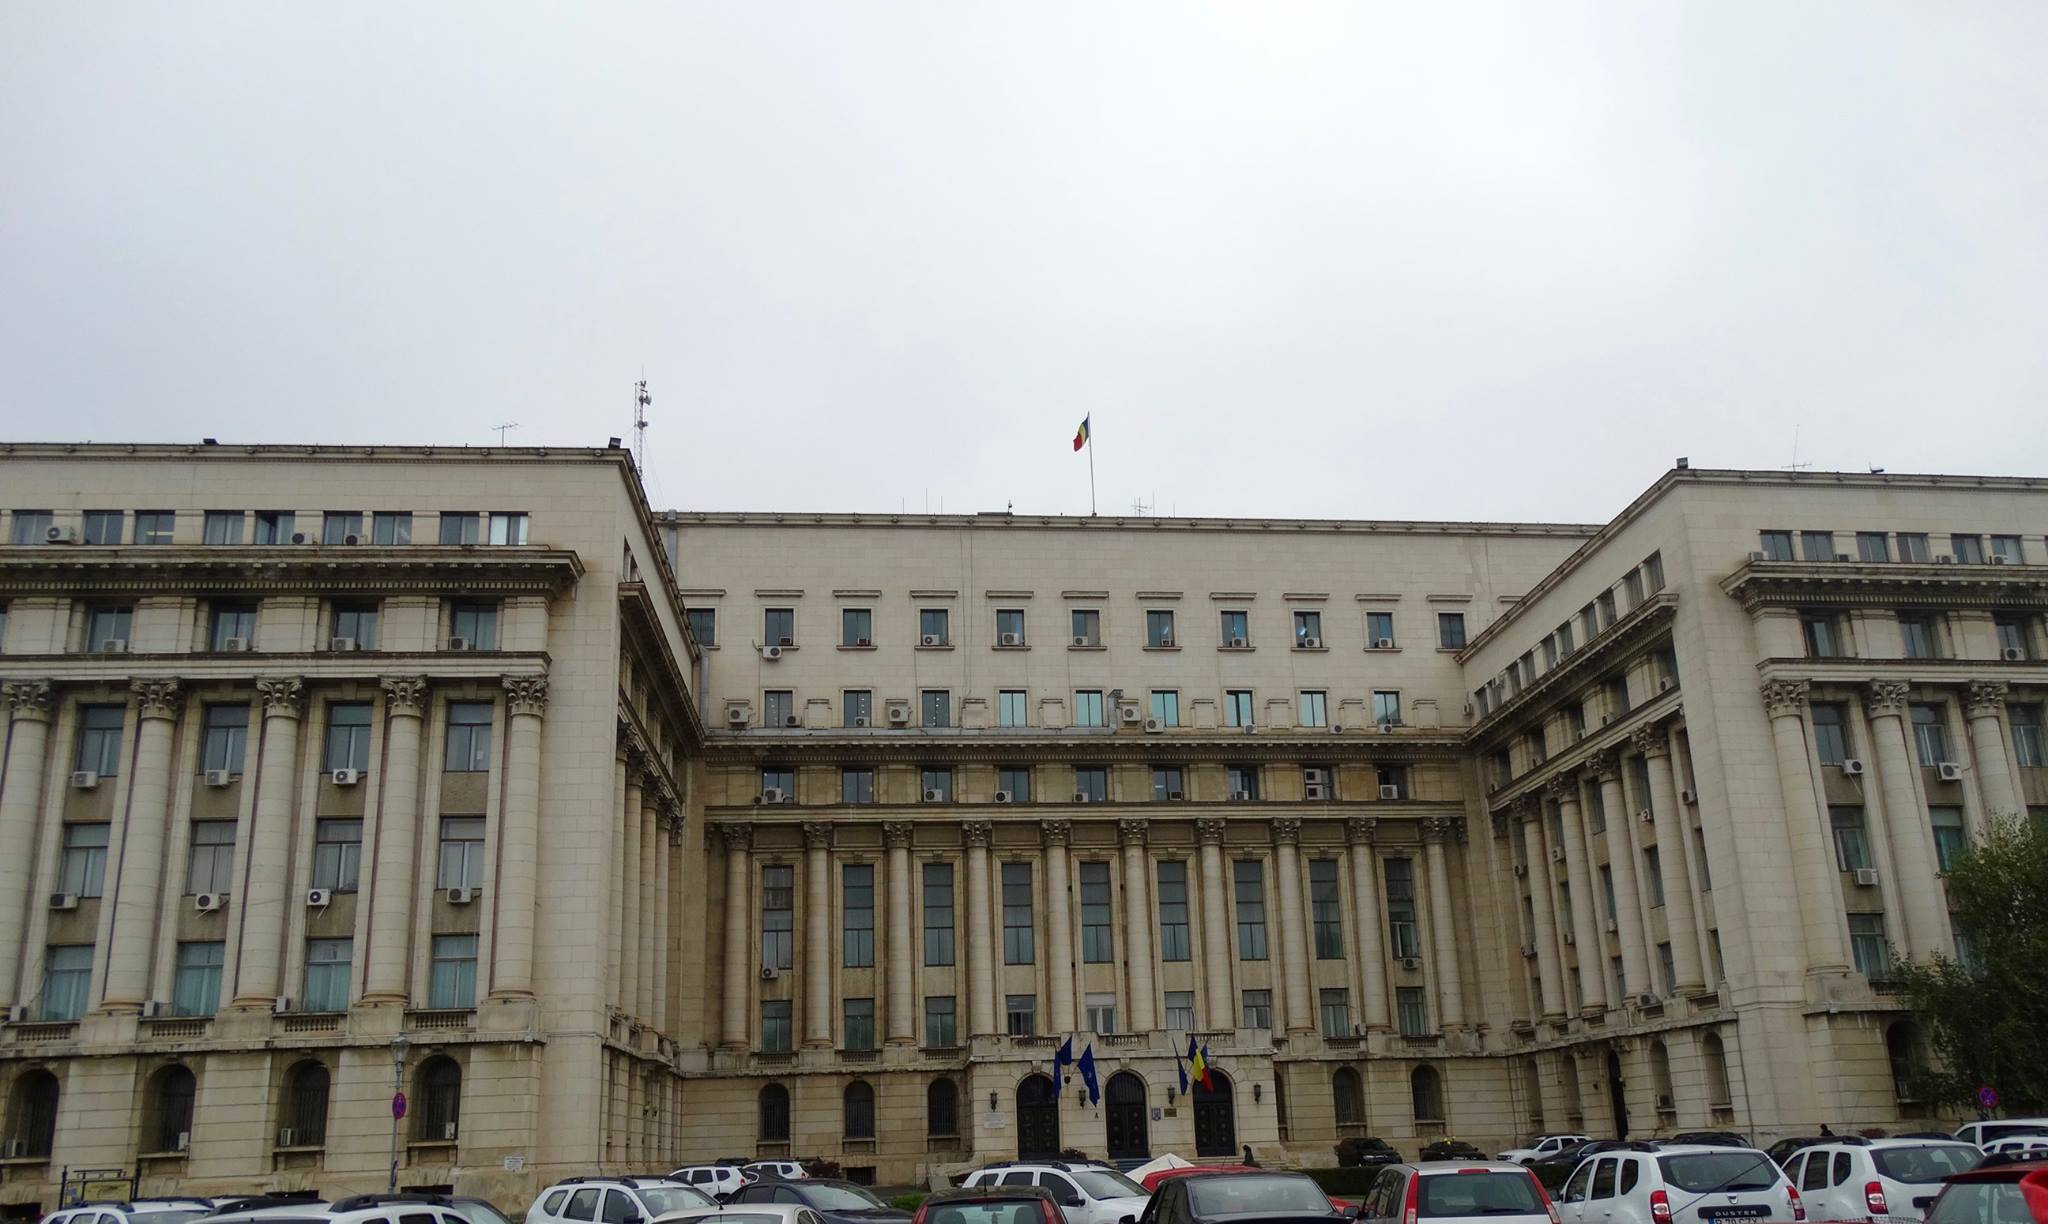 """From the Central Committee Building, the dictator Nicolae Ceauşescu attempted to give a speech on the balcony that would calm the angry crowd, reminding them of all the """"wonderful achievements"""" of the communist government. But he had completely misjudged how angry the Romanian people really were."""